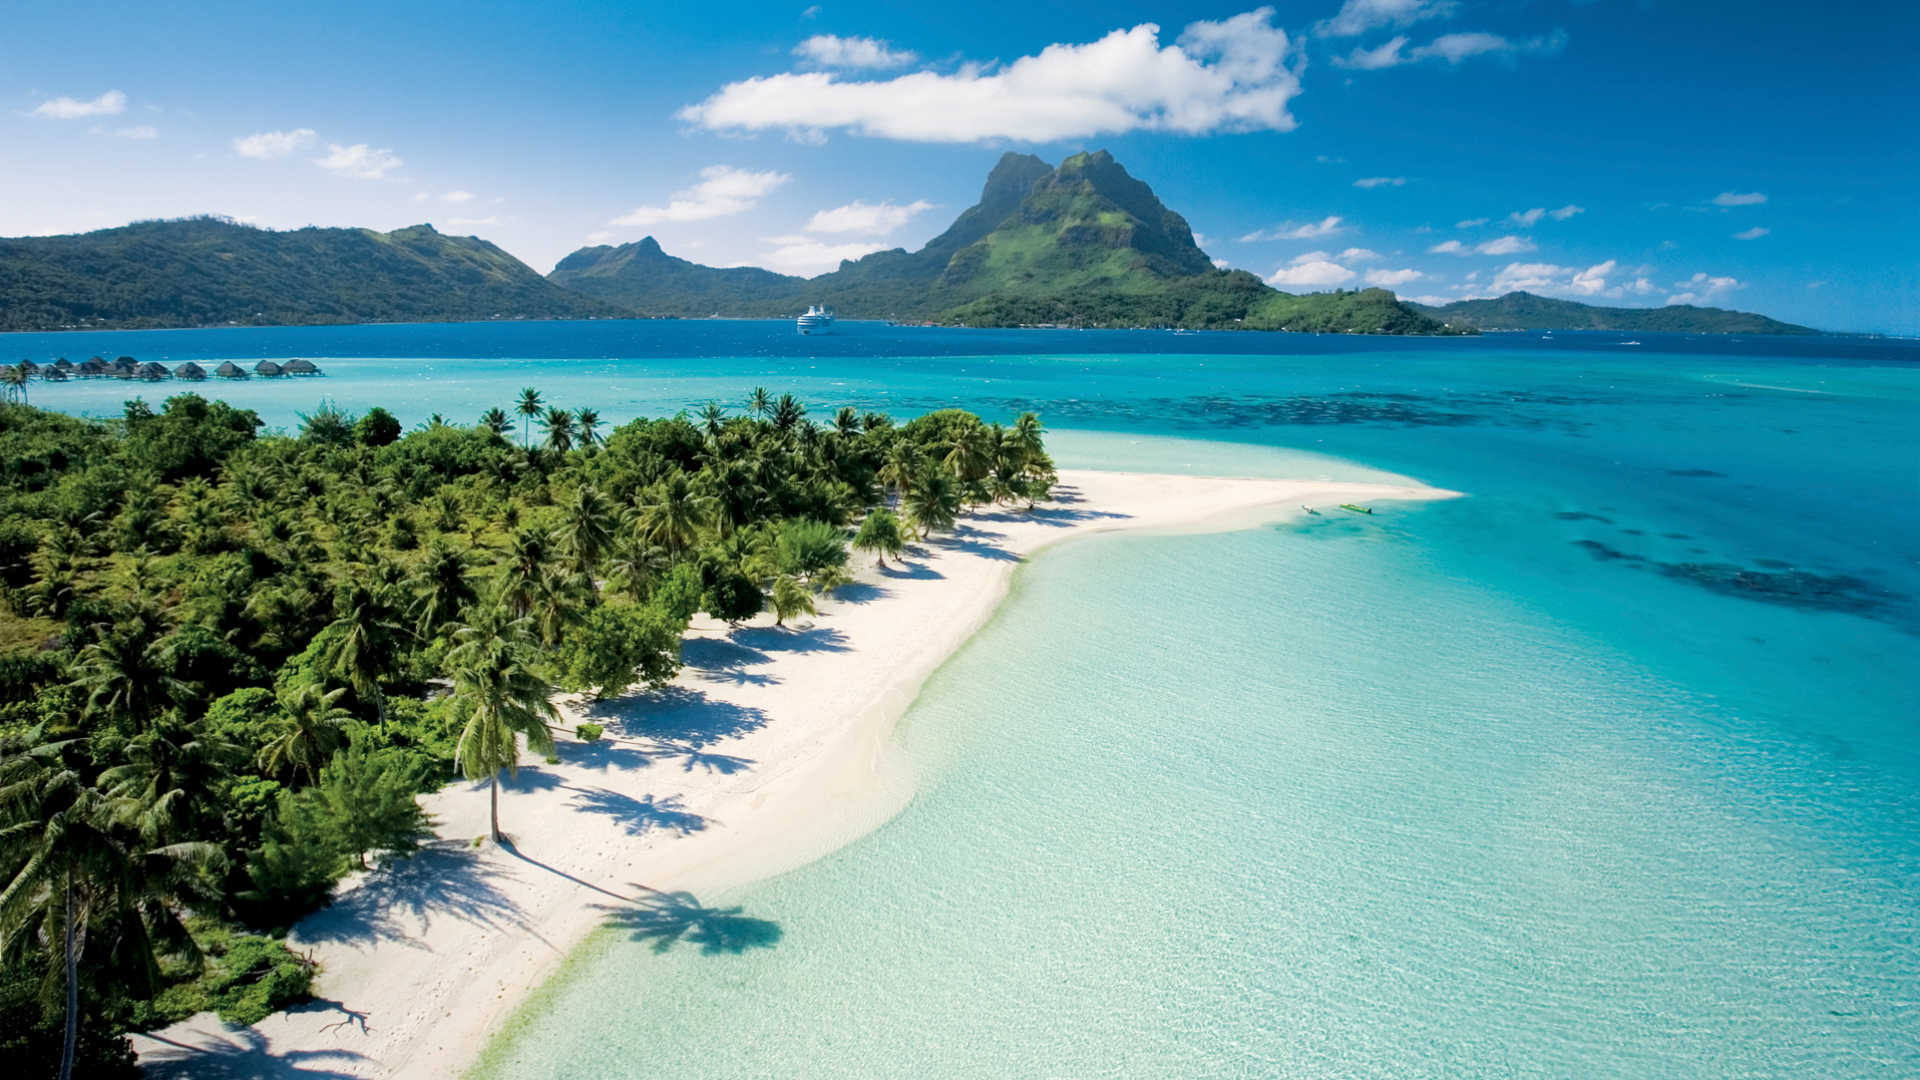 Pelorus Tahiti 1 Top Travel Trend: Controlled Environment Travel - EAT LOVE SAVOR International luxury lifestyle magazine and bookazines